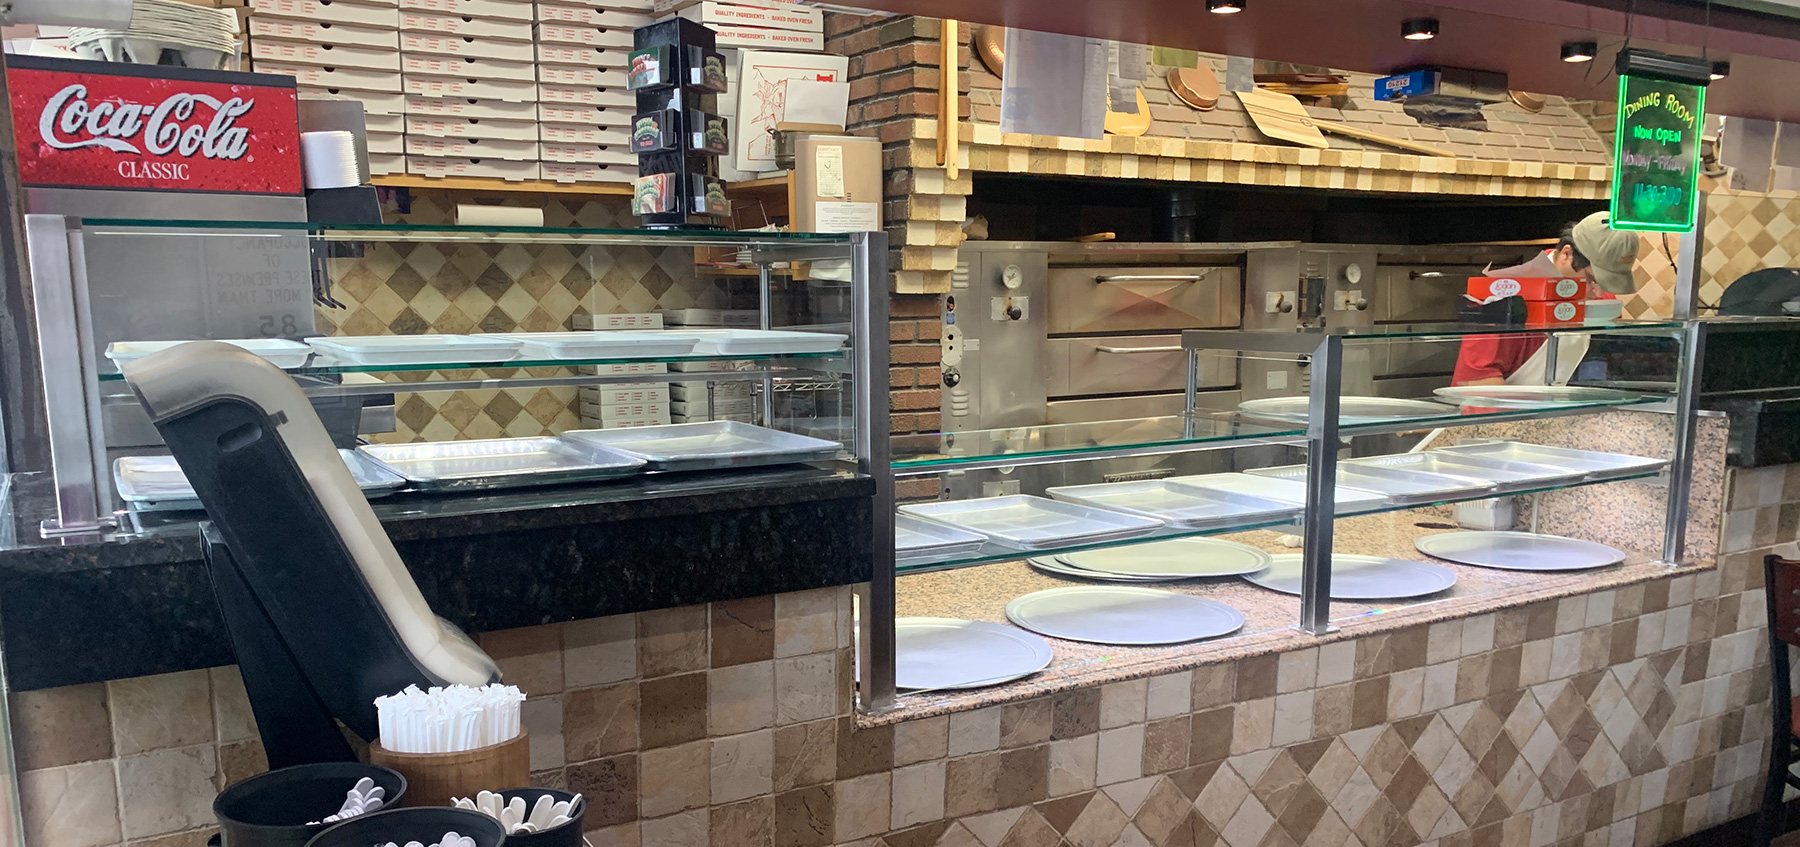 1 1/2 inch  Satin Stainless Steel Food Shield with LED Lights | Prince Umberto's - Franklin Square, NY